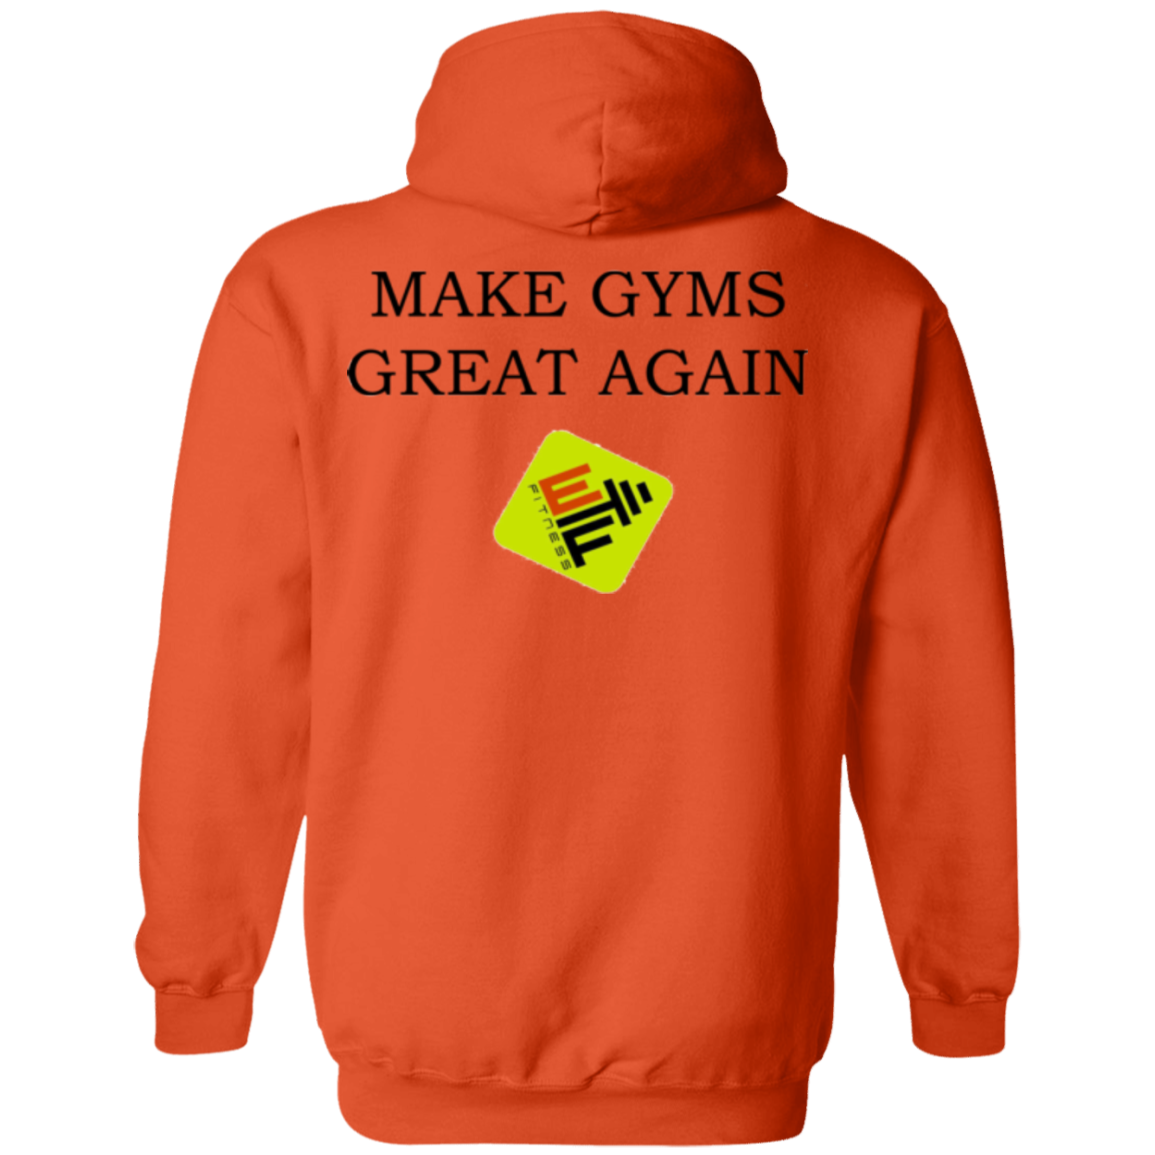 Make Gyms Great Again  Gildan Pullover Hoodie 8 oz.